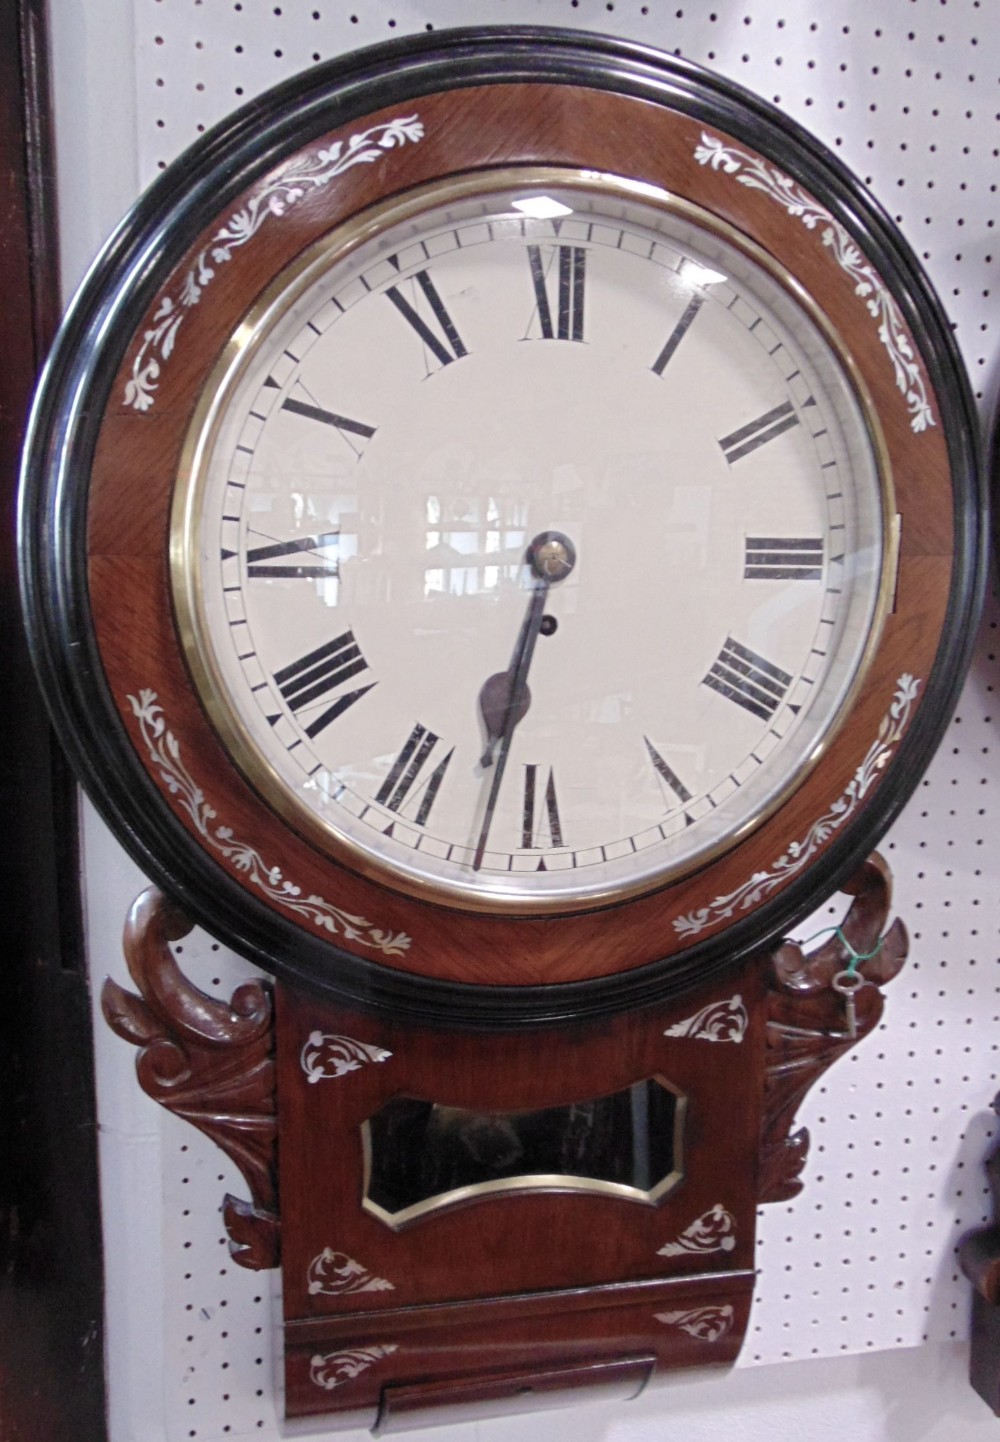 Lot 560 - 19th century single fusee rosewood and mother of pearl inlaid drop dial wall clock, 11.5 inch dial